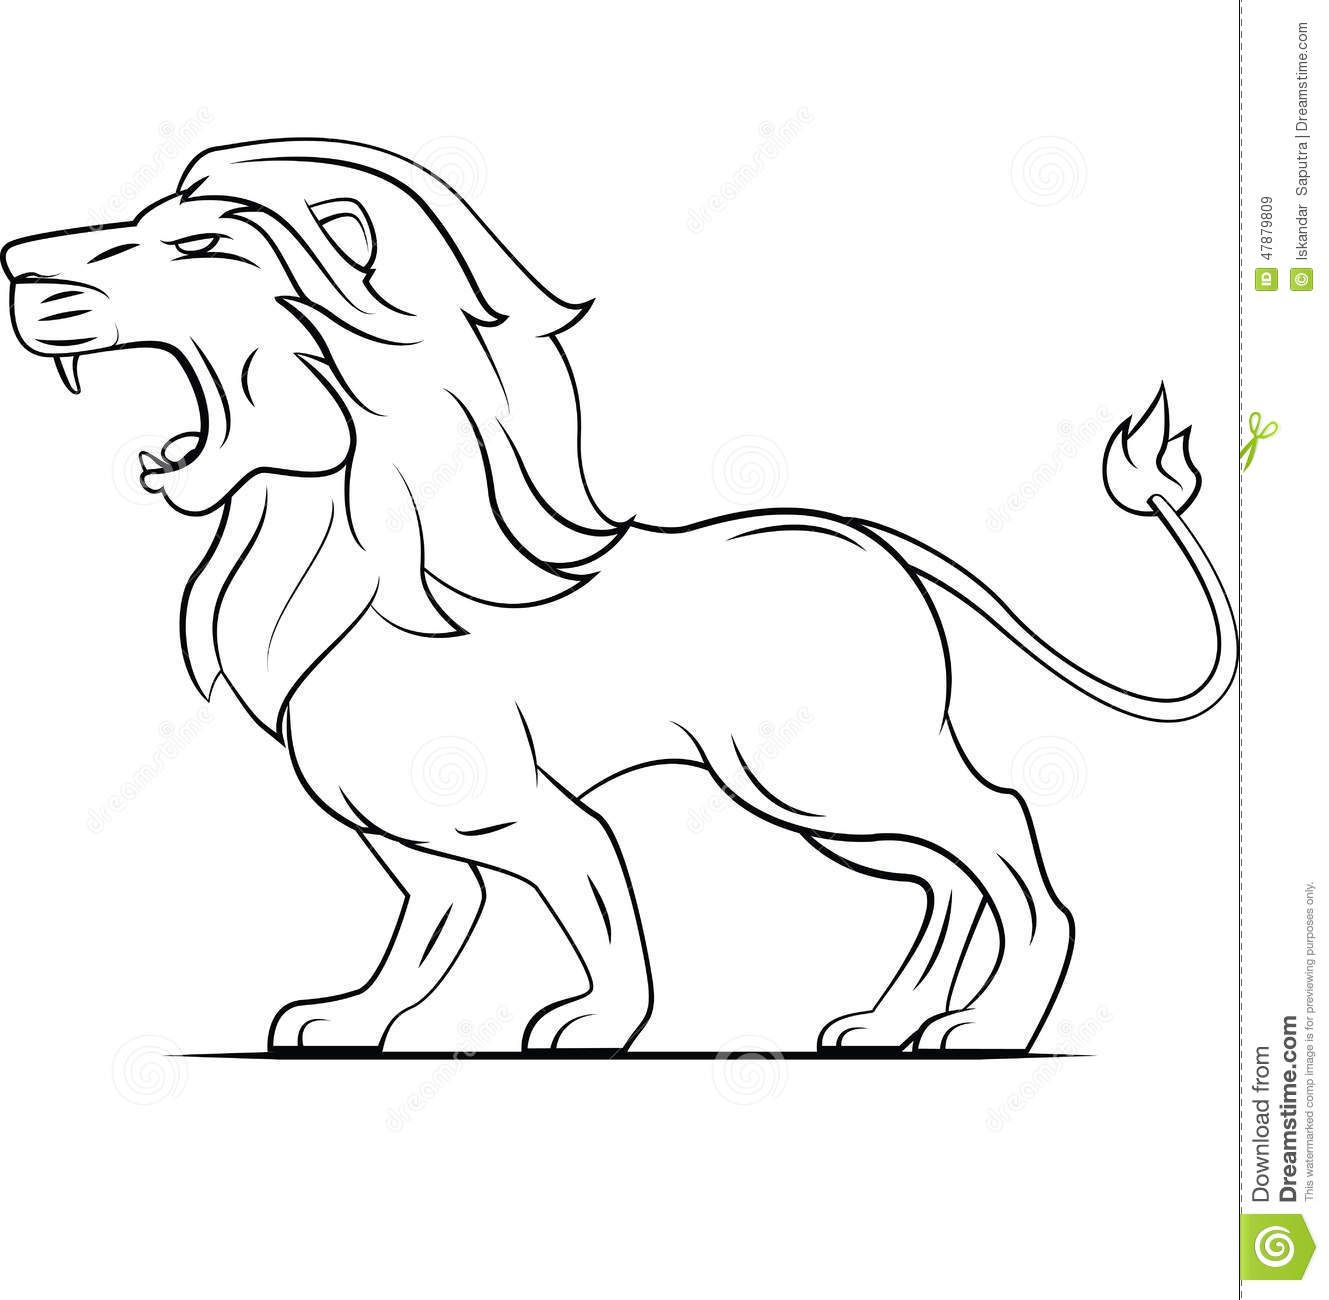 Lion Roaring Drawing Black And White Google Search Free Clip Art Art Drawings